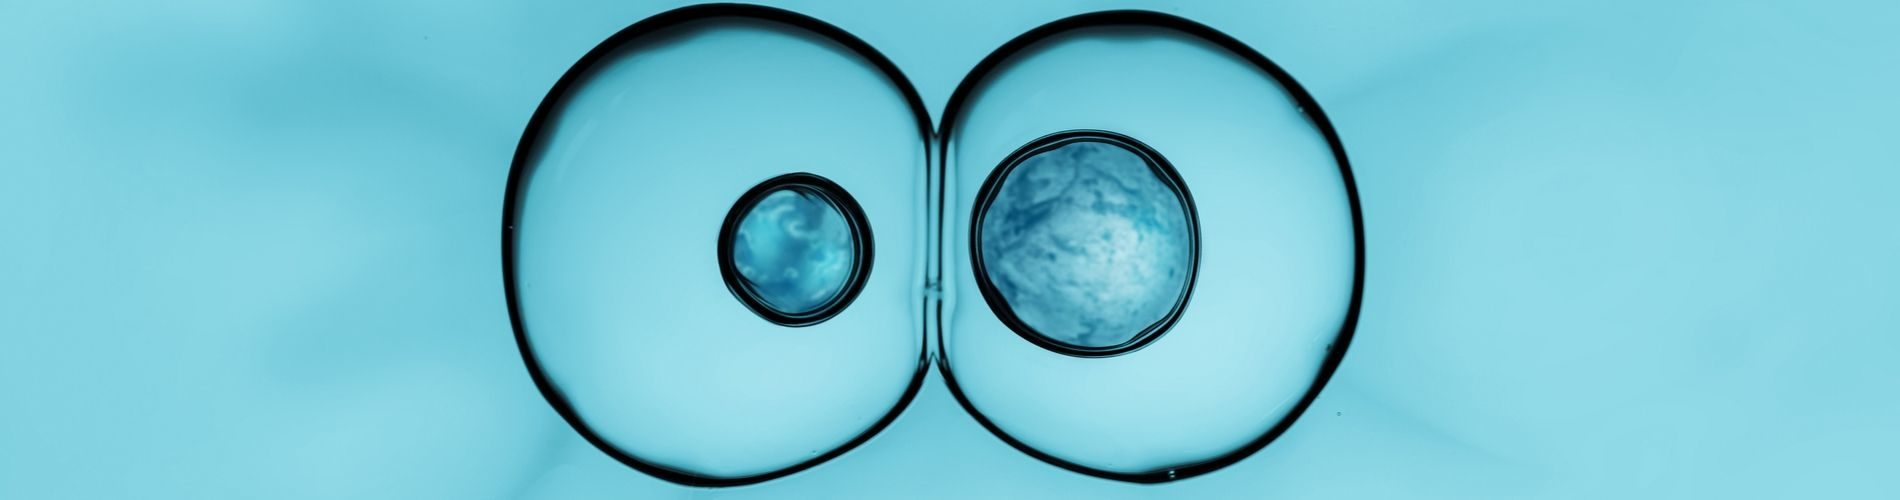 IVIRMA Grows Embryos to Day Nine, Isolates Potential Mosaic Biomarker Gene